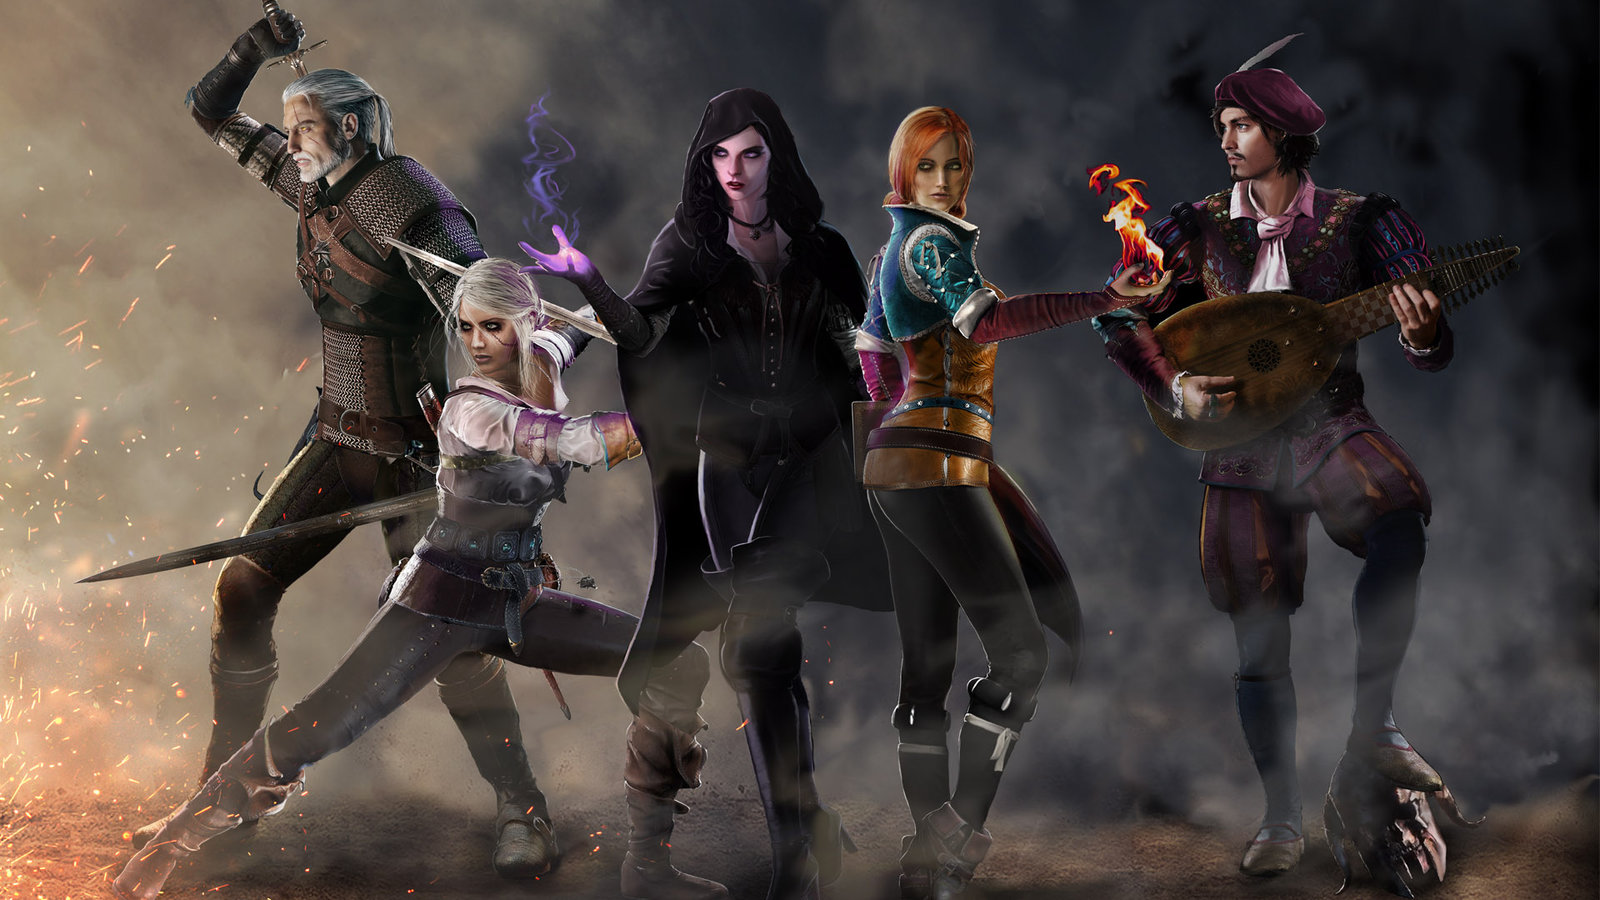 getting_the_band_back_together___witcher_3_by_shinobi2u-d8rwgpj